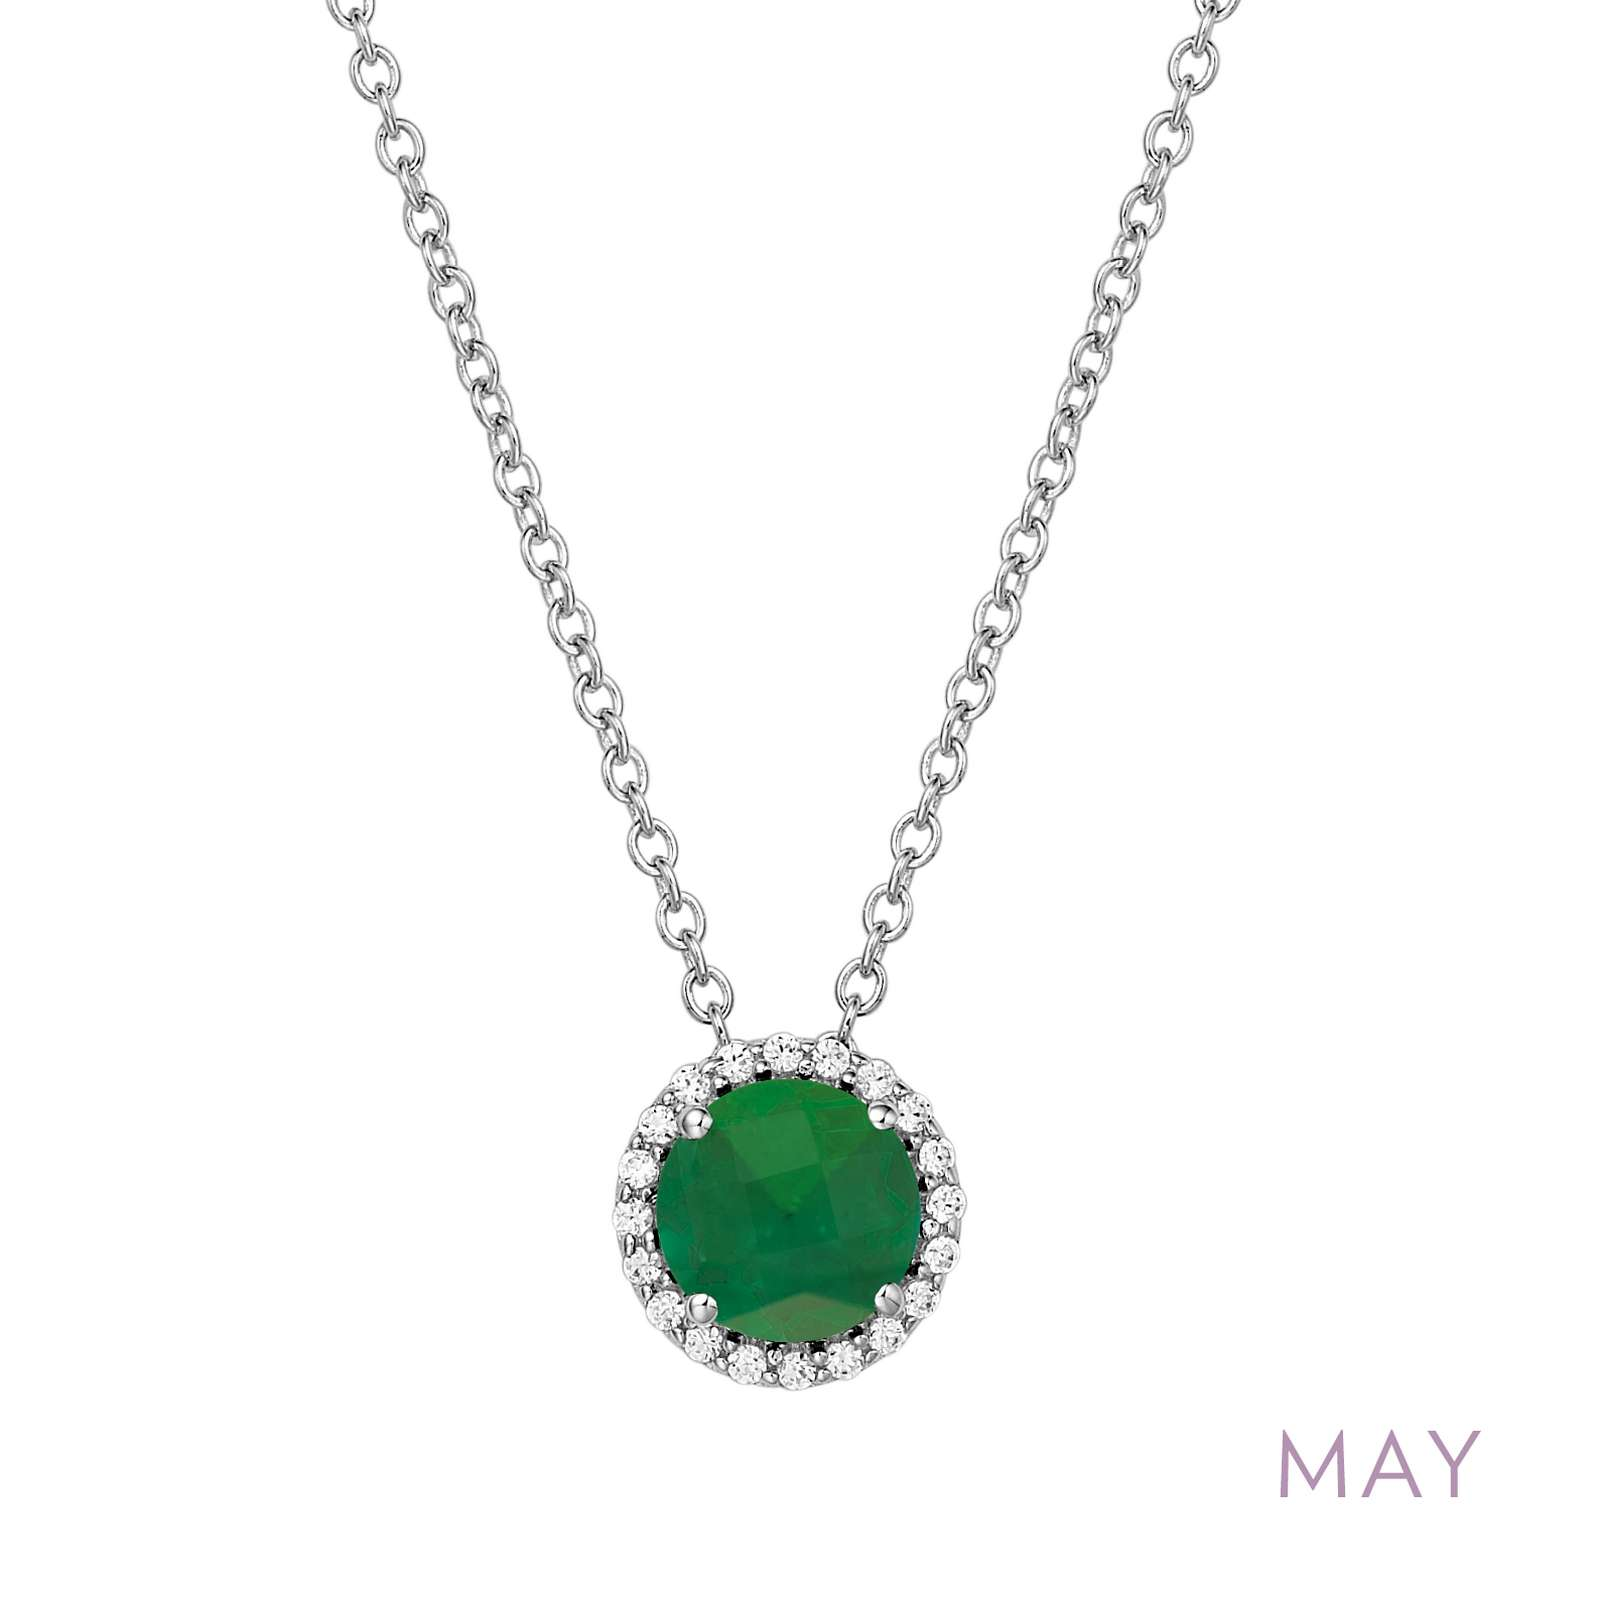 May - Emerald.  Adorn yourself with Lafonn's birthstone jewelry. The necklace is set with a simulated emerald surrounded by Lafonn's signature Lassaire simulated diamonds in sterling silver bonded with platinum.